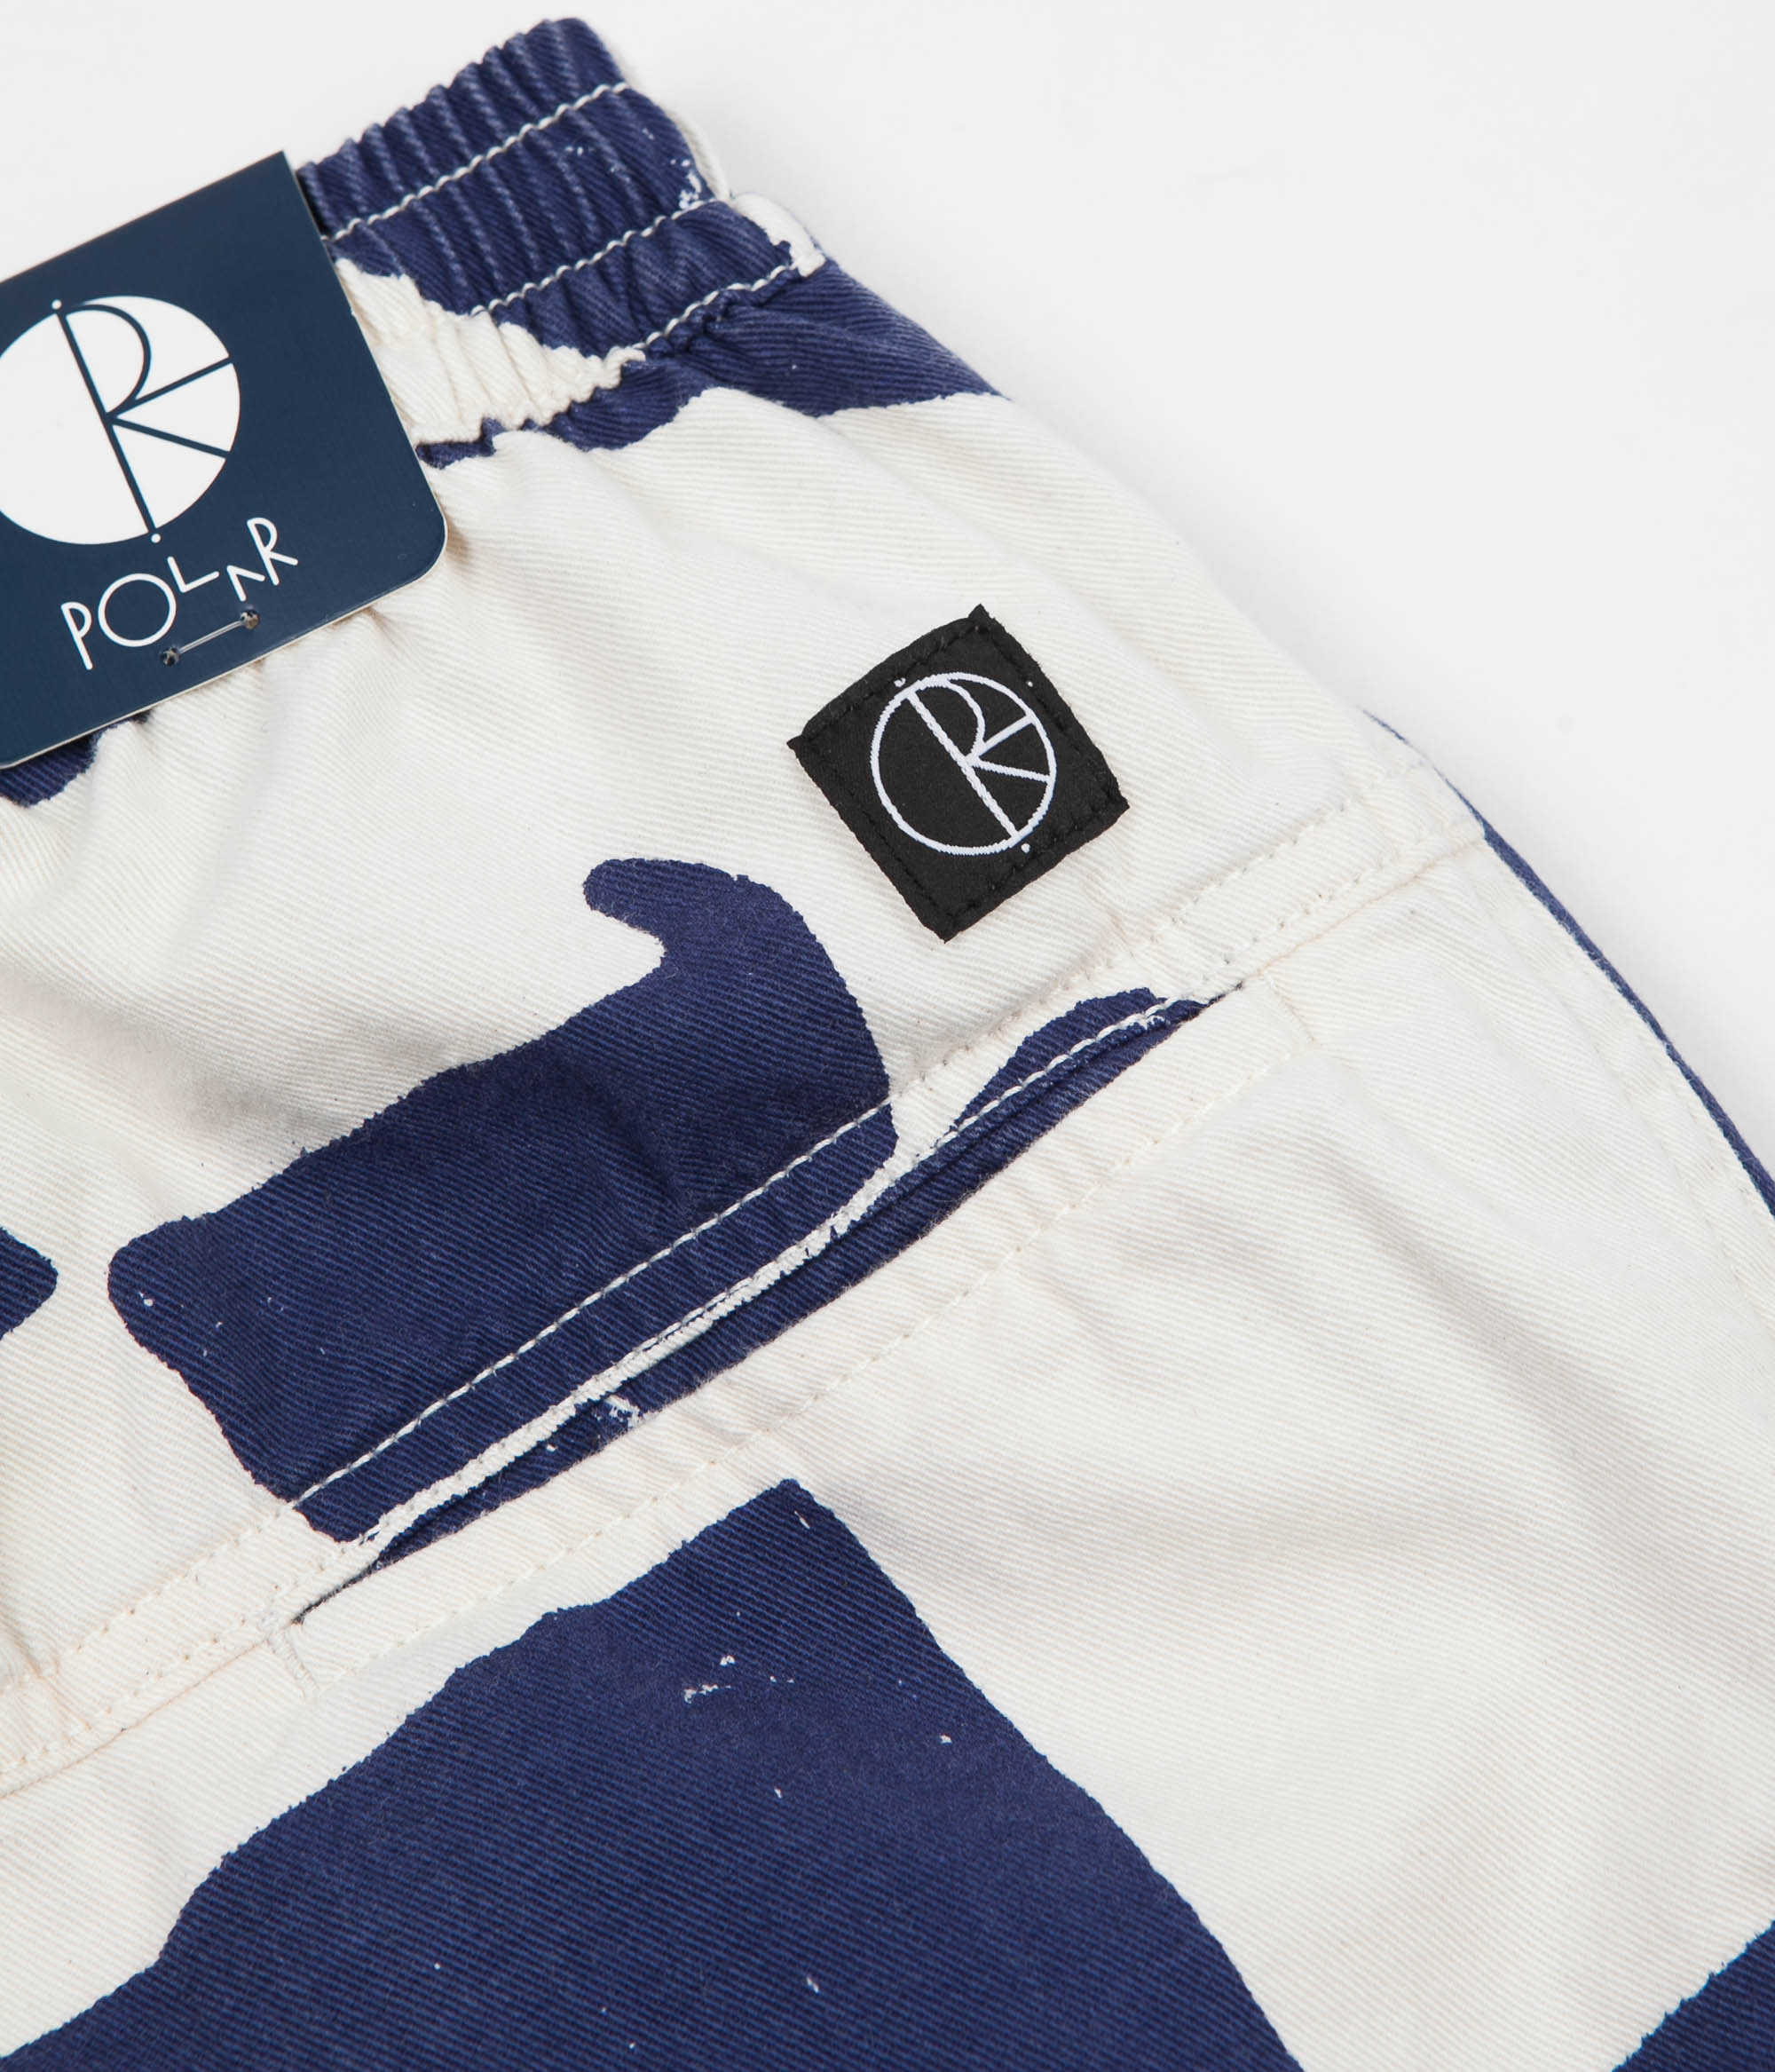 Polar TK Surf Pants - Ecru / Navy